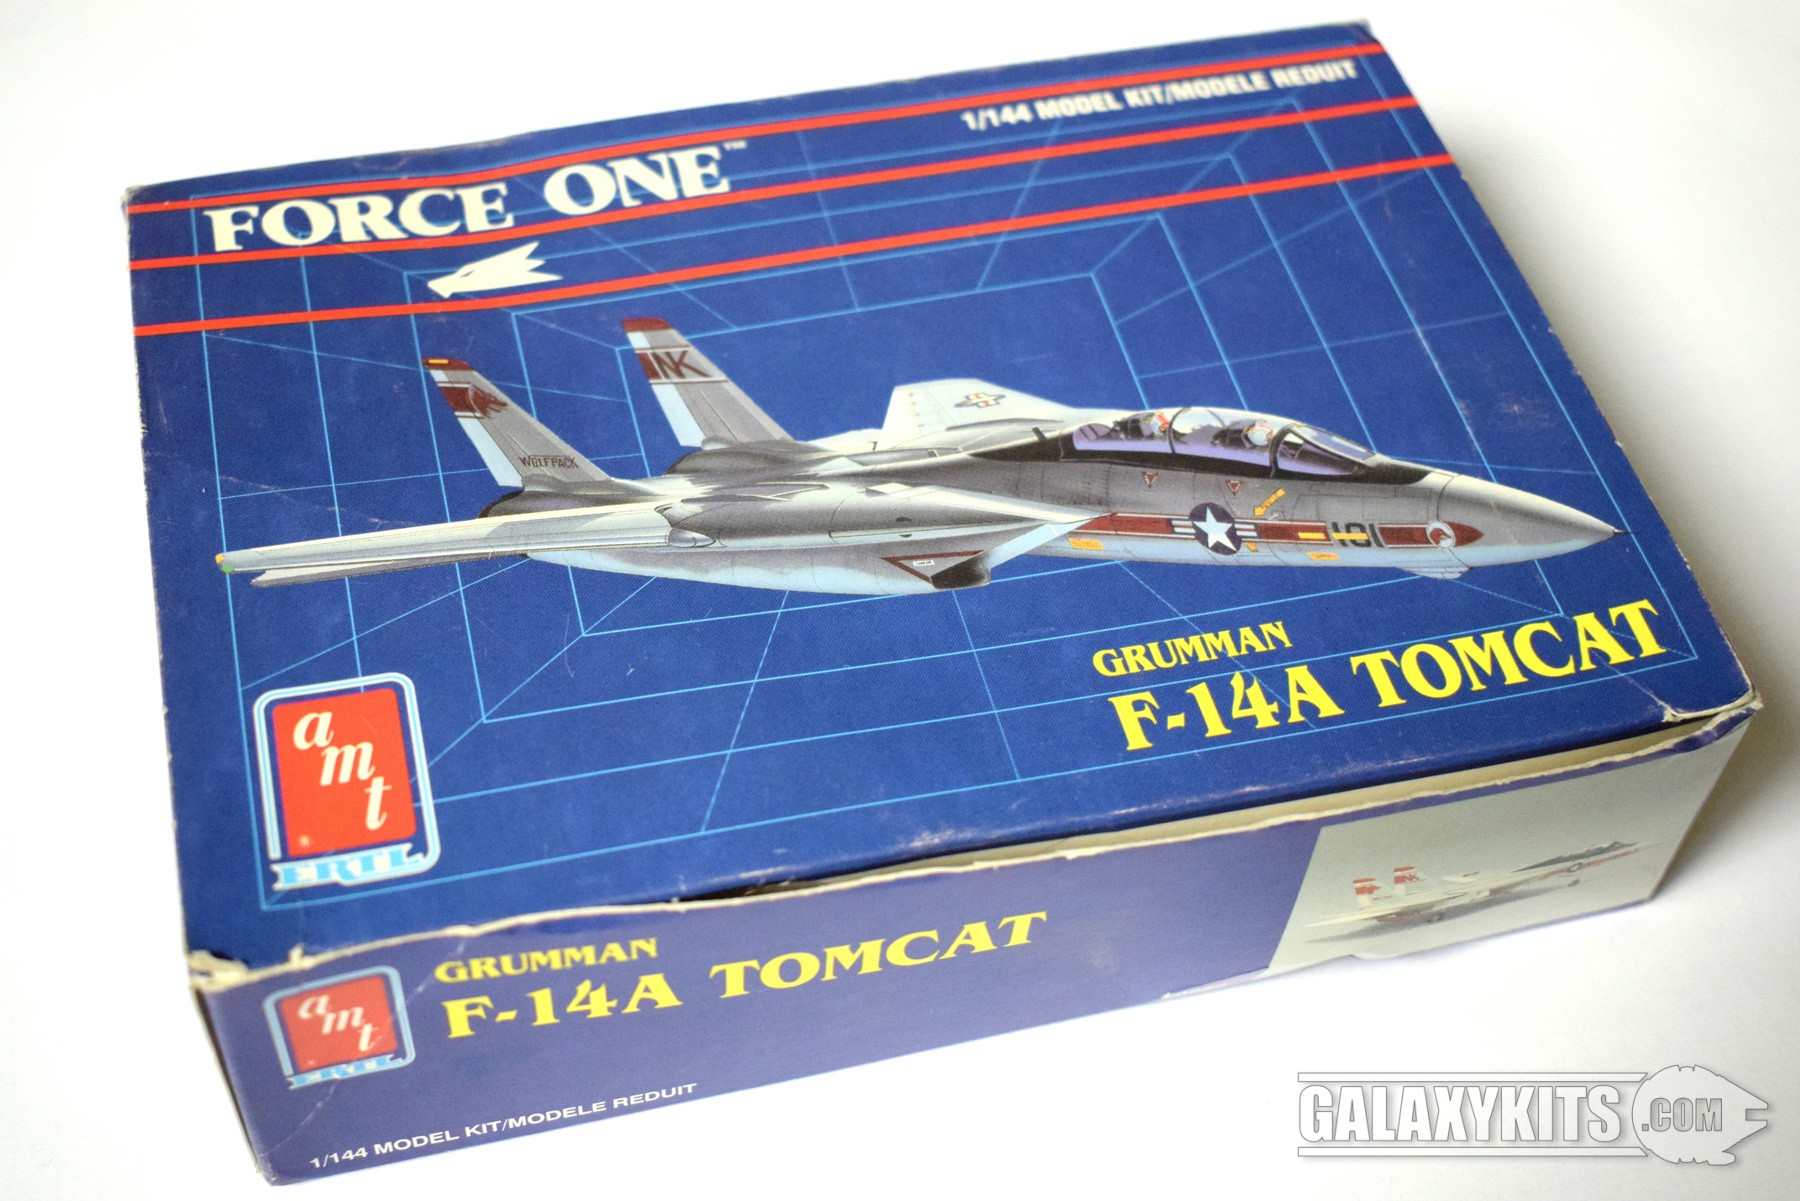 Grumman F-14A Tomcat Force One / 1:144 / AMT/Ertl